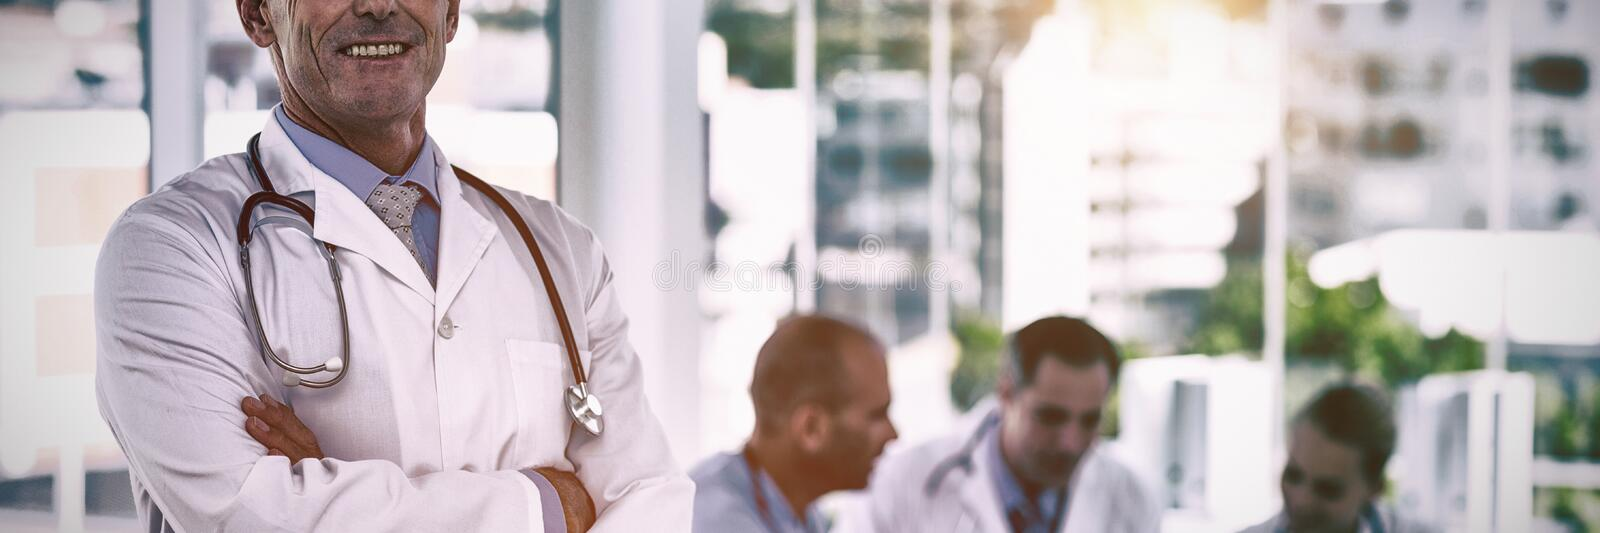 Portrait of happy doctor standing with arms crossed while his colleagues works royalty free stock photography